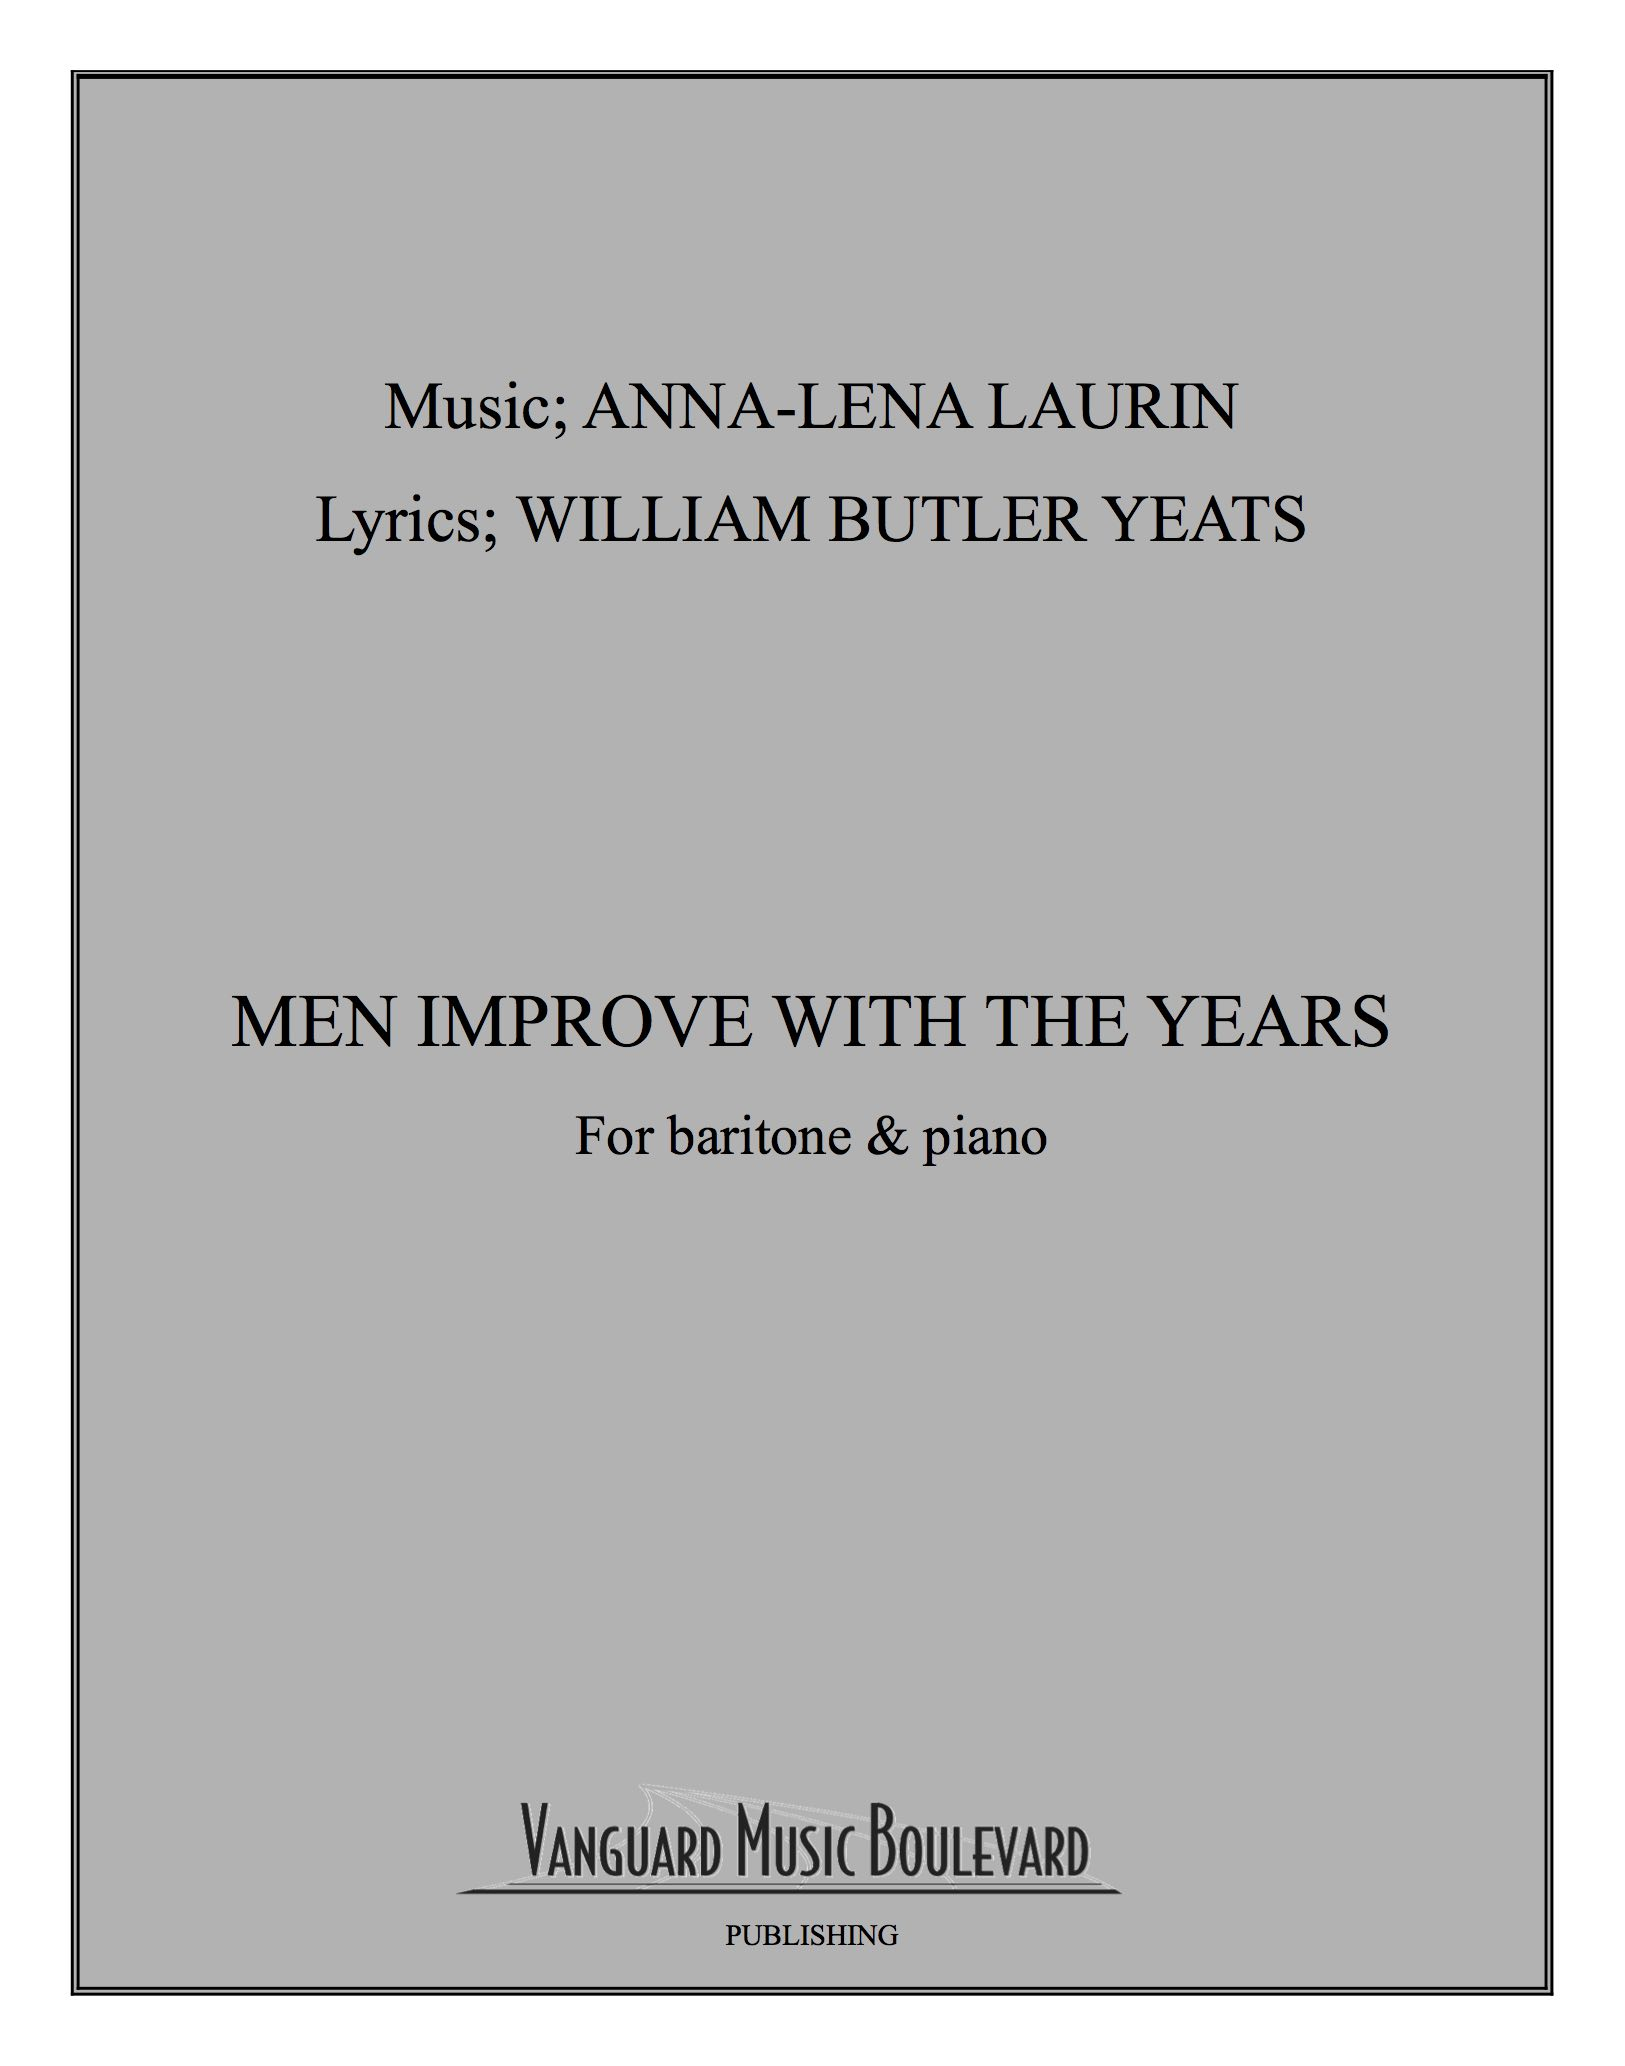 Men improve with the years